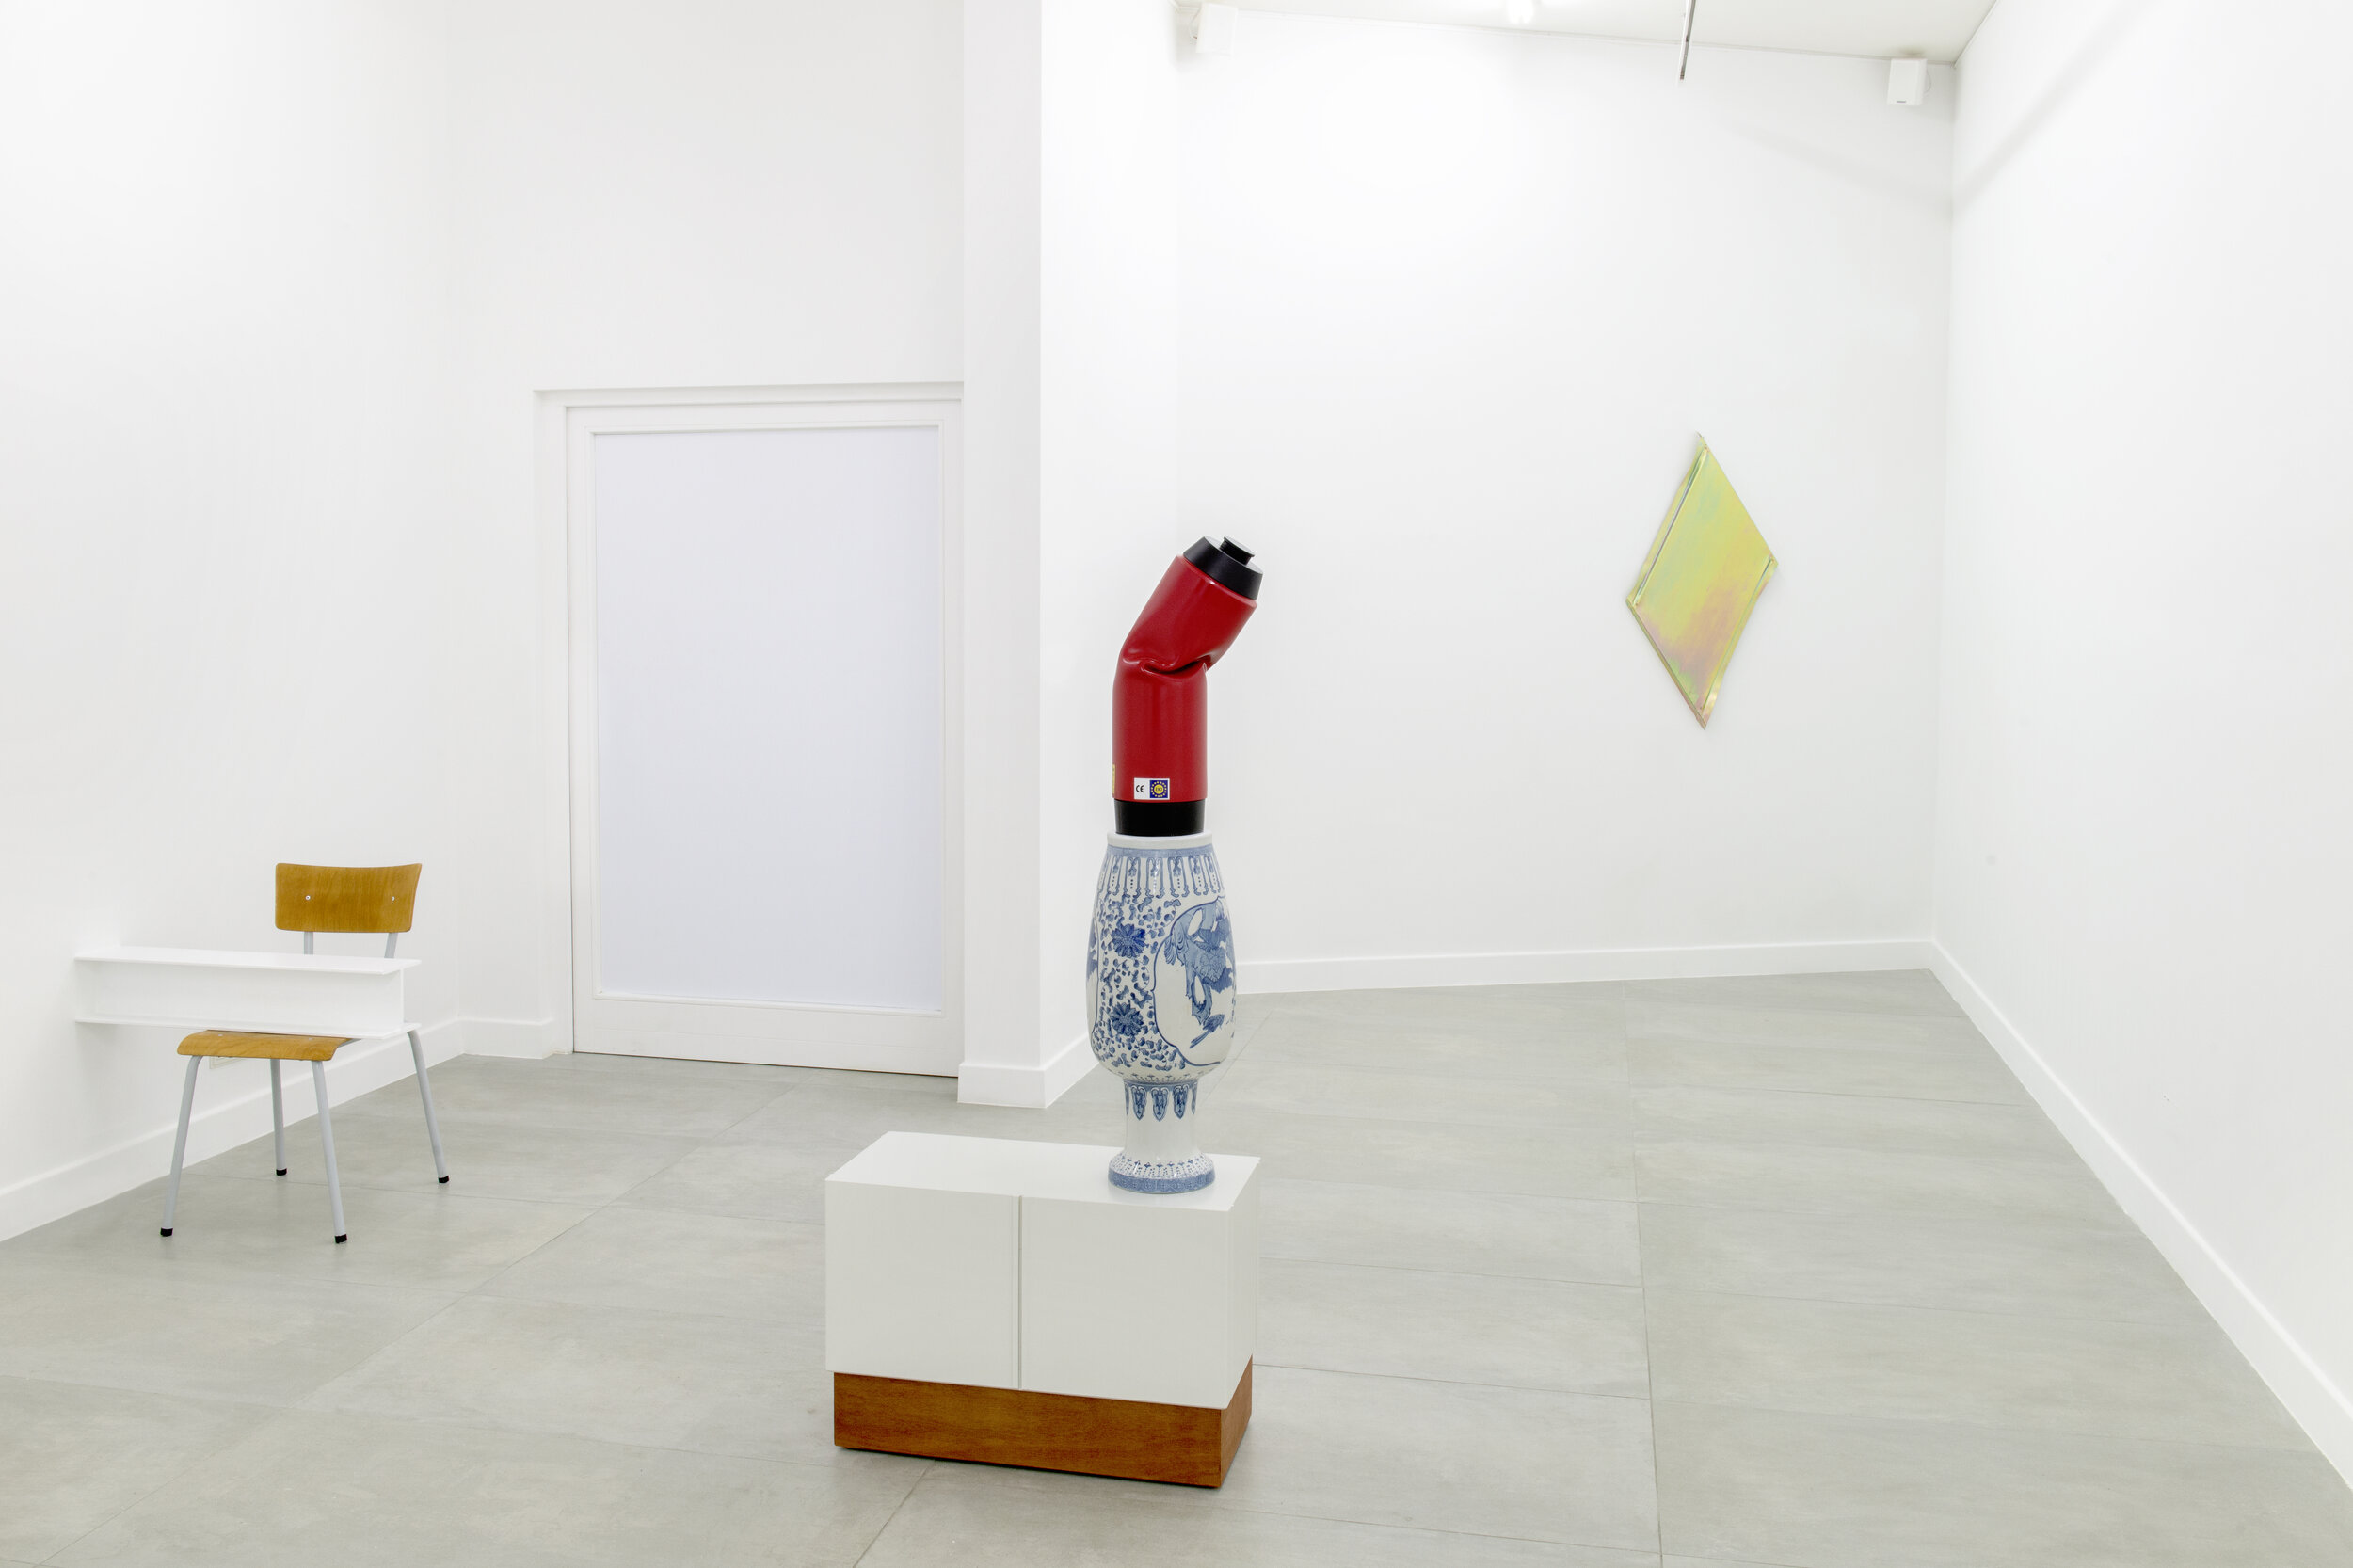 Exhibition view duo show 'allo, 'allo. (l-r) (1) Roeland Tweelinckx -  Replacements  (2019), white beam, chair 80 x 50 x 78 cm | (2) Roeland Tweelinckx -  How Soon Is Now  (2018) synthetic material, wood, ceramics and paint, 160 x 70 x 30 cm | (3) Just Quist-  Untitled (so you are friends with camels) (2014)  pacified steel, 114 x 61 cm. Barbé Urbain gallery , Gent, BE.